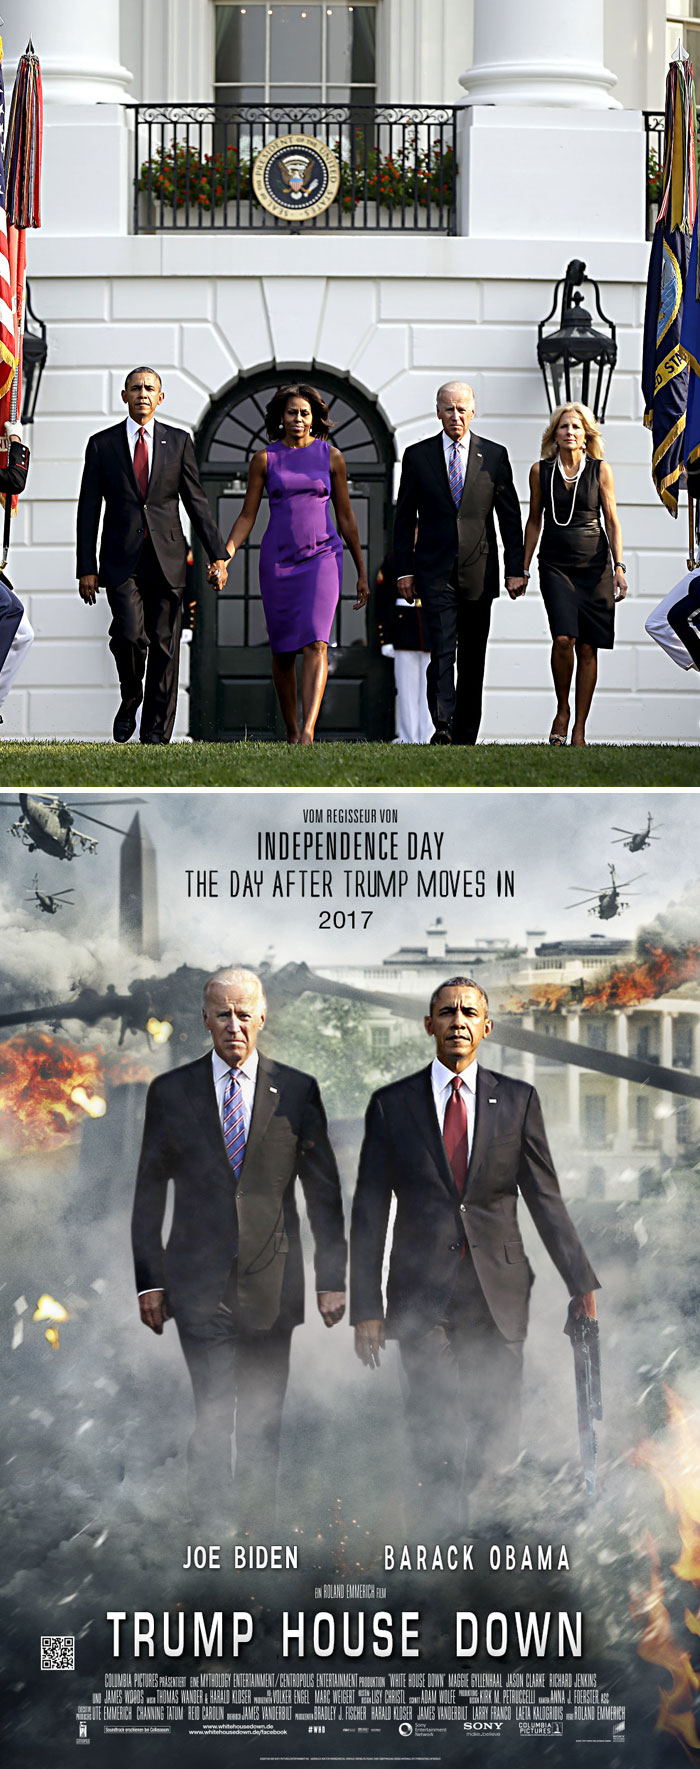 The Obama's And Biden's Walk Away From White House